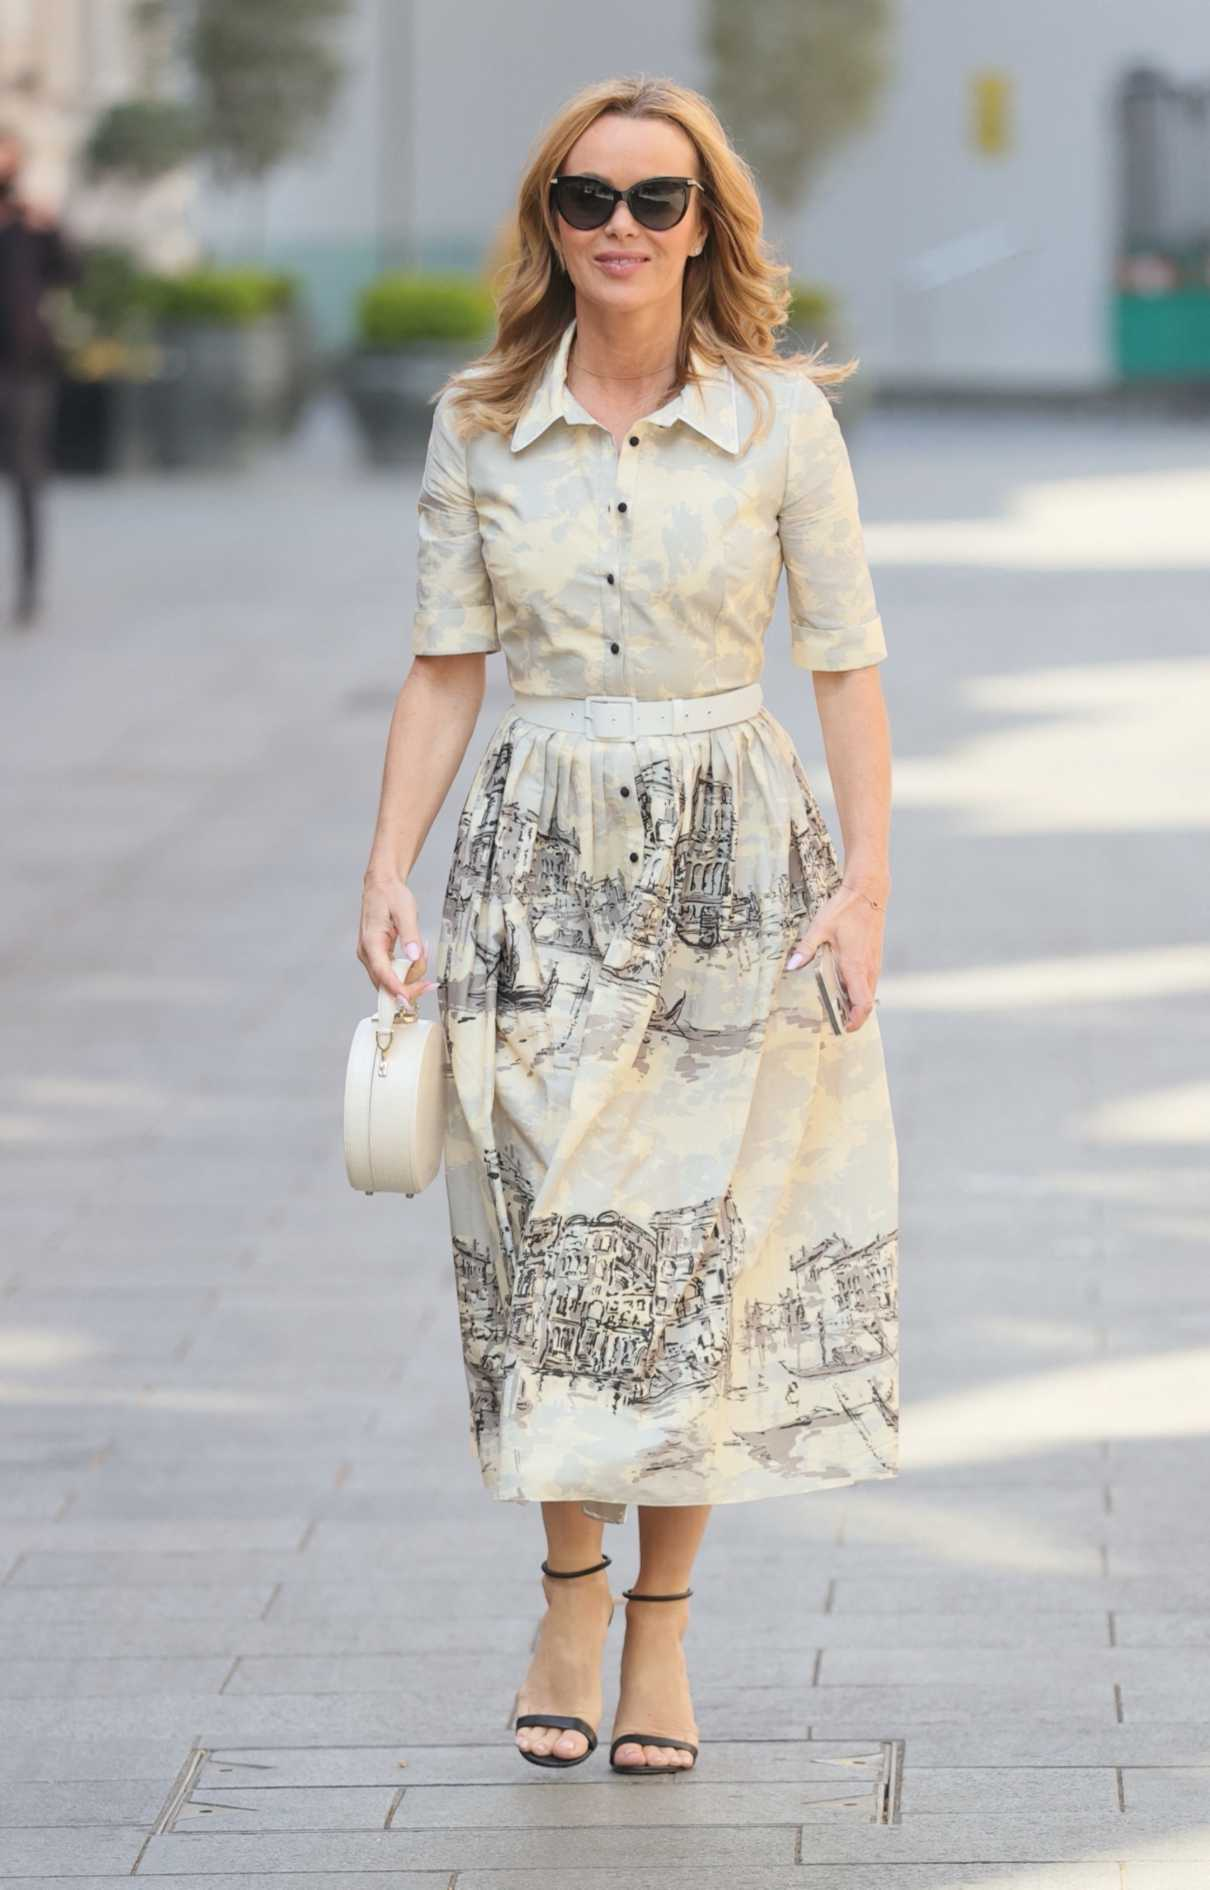 Amanda Holden in a Belted Dress